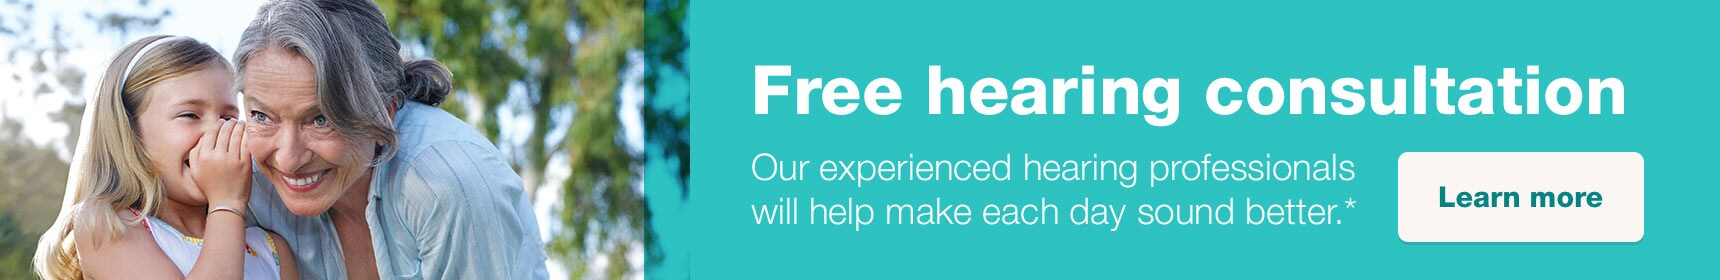 Free hearing consultation. Our experienced hearing professionals will help make each day sound better.* Learn more.